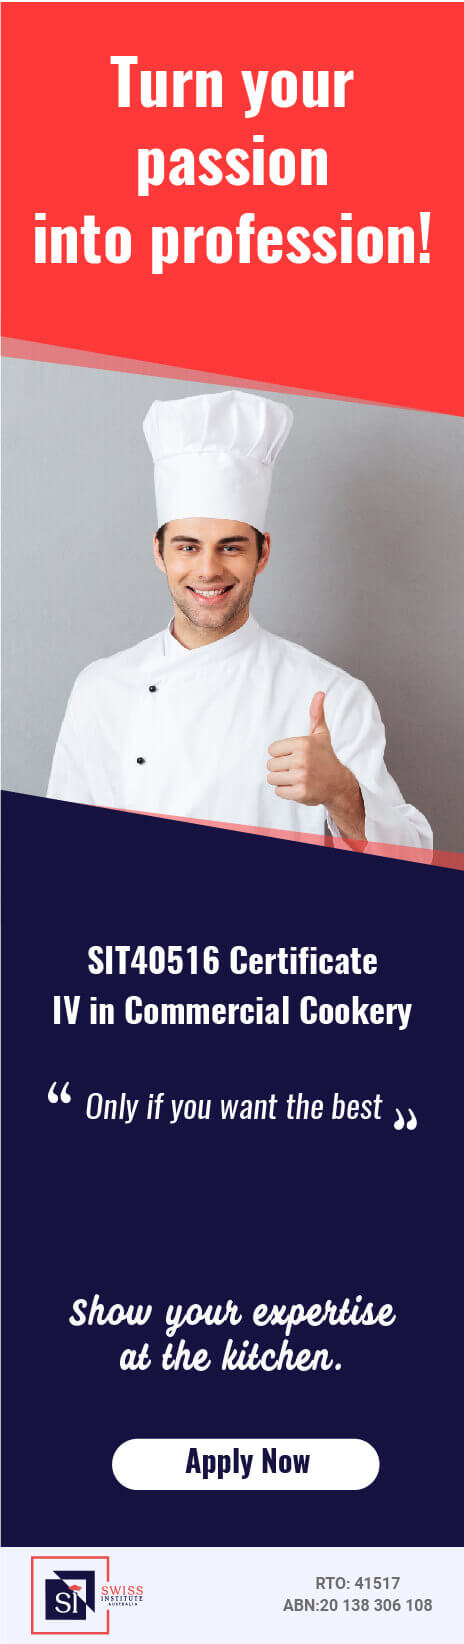 SIT40516 Certificate IV in Commercial Cookery Course in Melbourne - Swiss Institute Australia Provide SIT40516 Certificate IV in Commercial Cookery in Melbourne